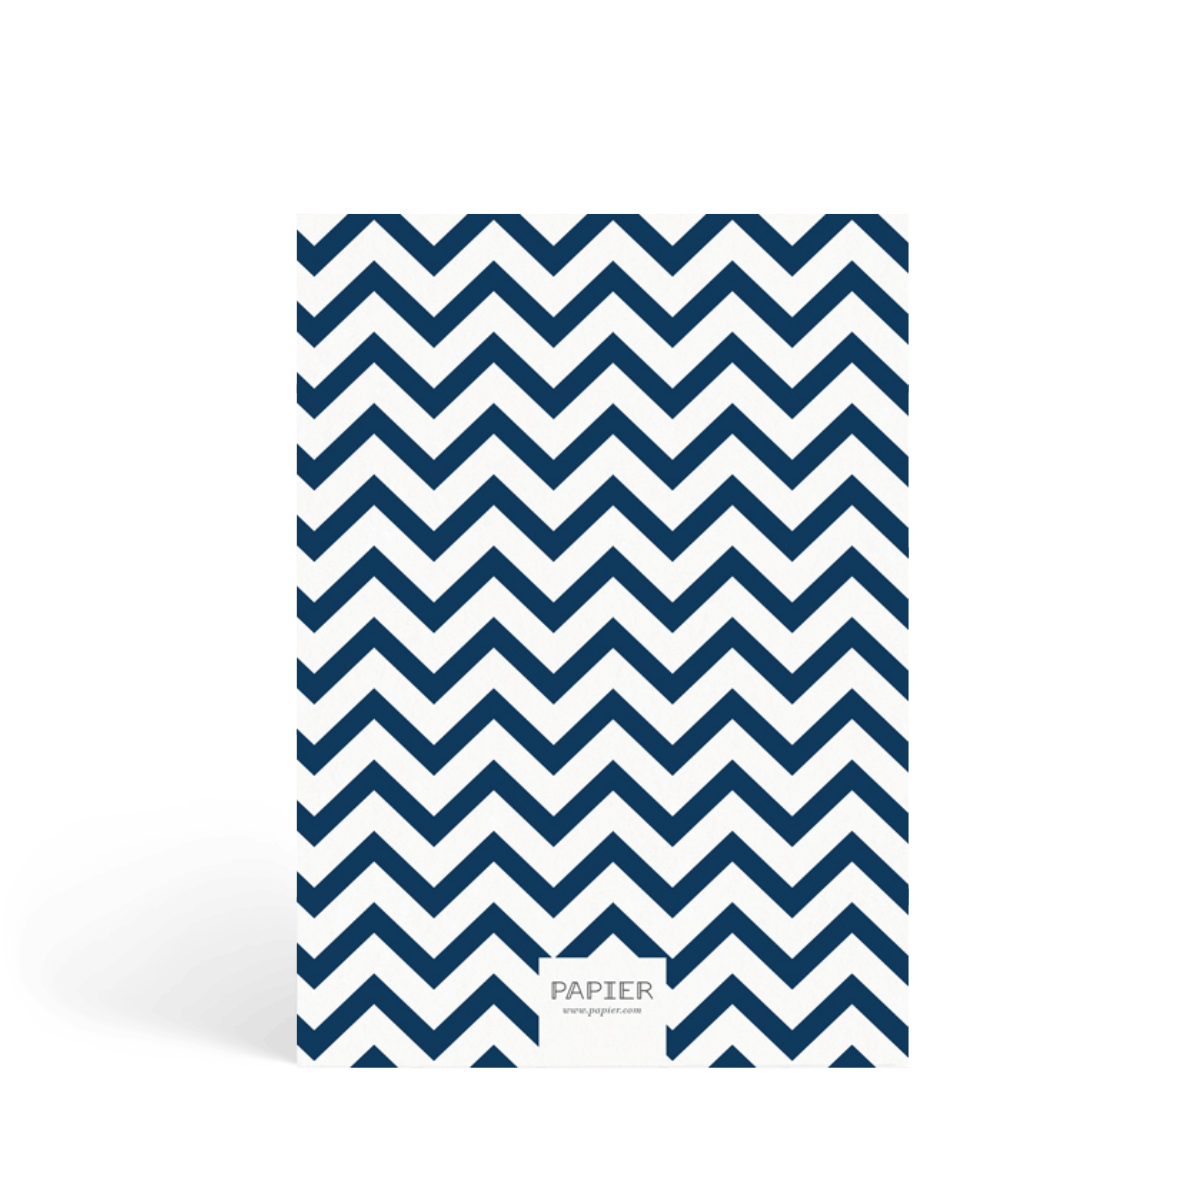 Https%3a%2f%2fwww.papier.com%2fproduct image%2f64028%2f5%2fnavy chevrons 15028 back 1548856048.png?ixlib=rb 1.1